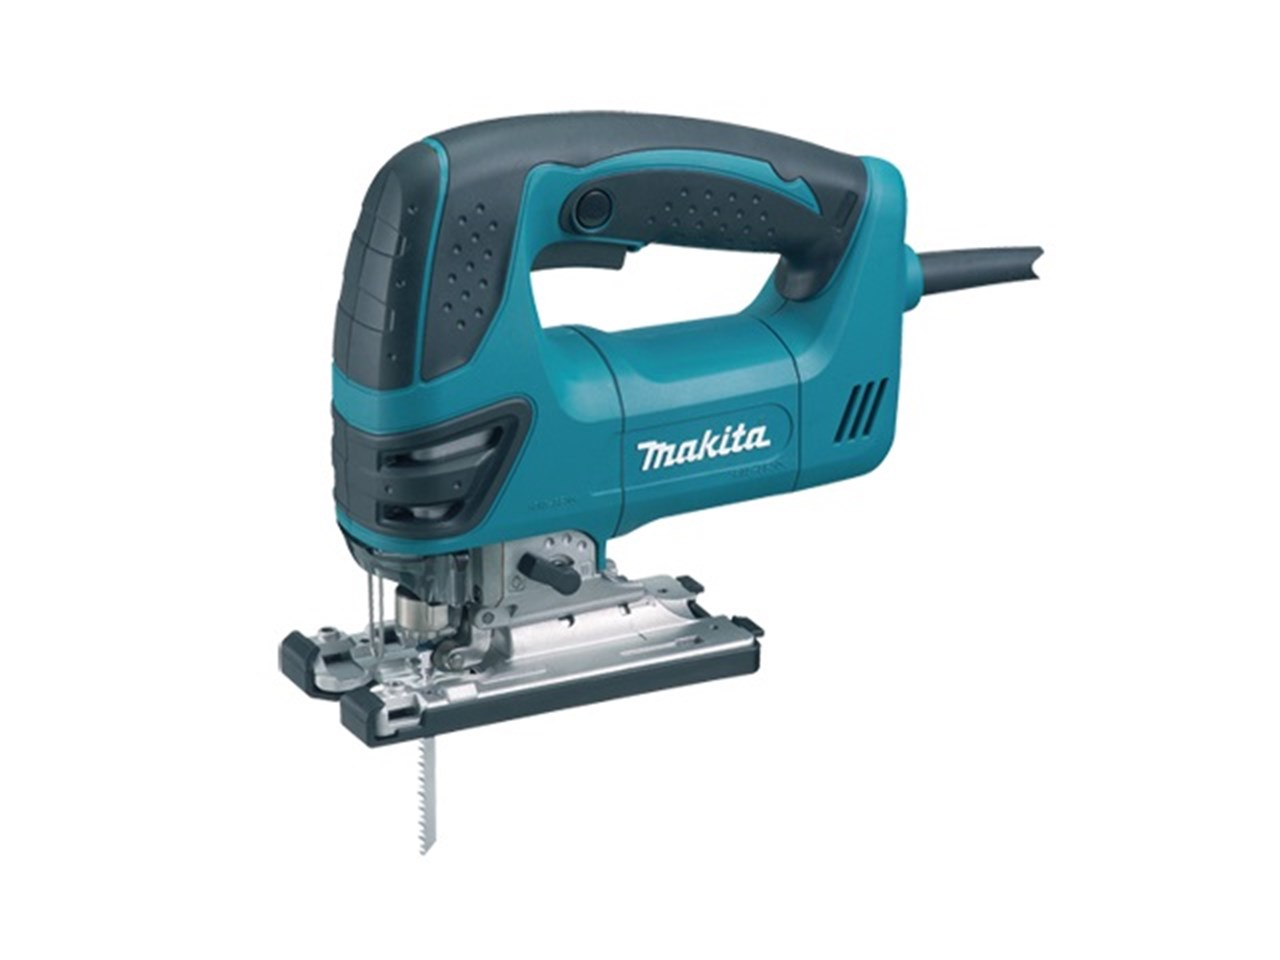 Makita 4350FCT 240V Orbital Action Jigsaw & Light 720W - Quick Release Tool-Less Blade Change